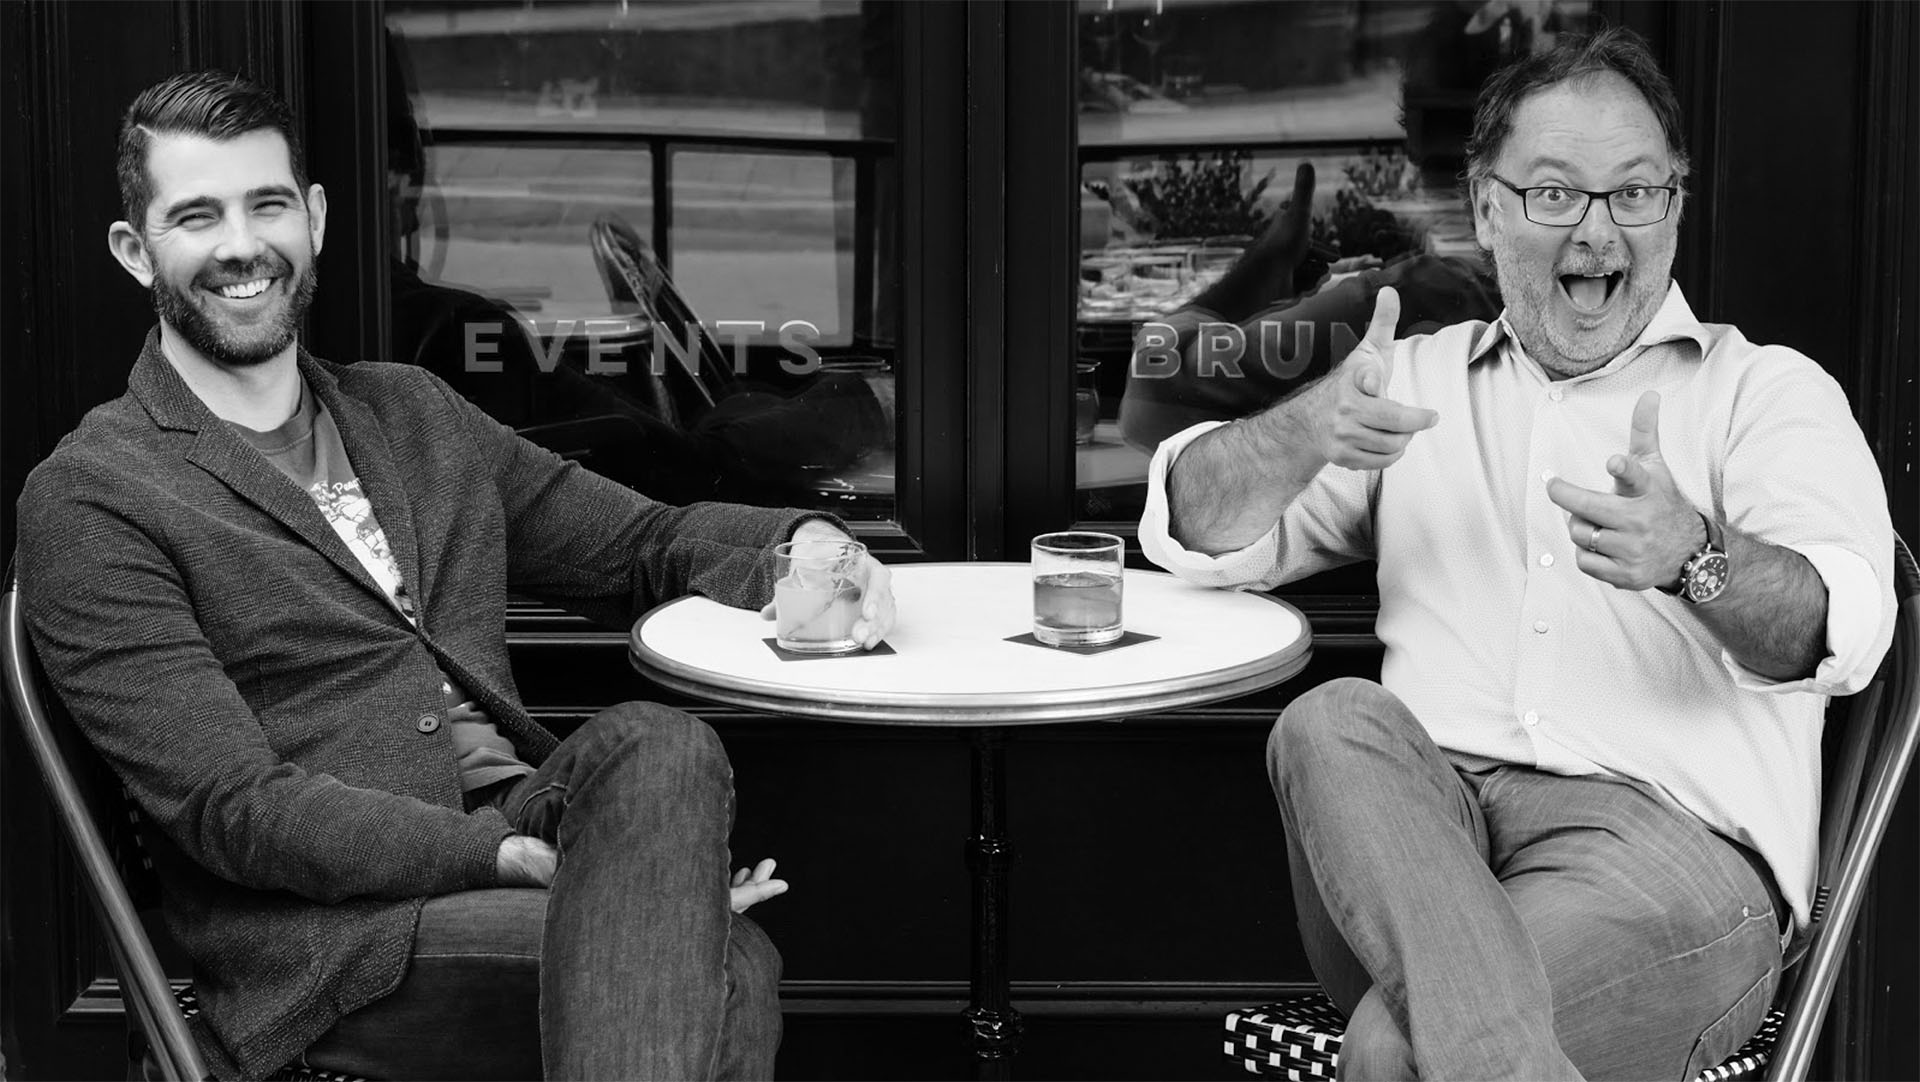 Jerrett Young and Jason Cassis sitting outside a cafe drinking coffee